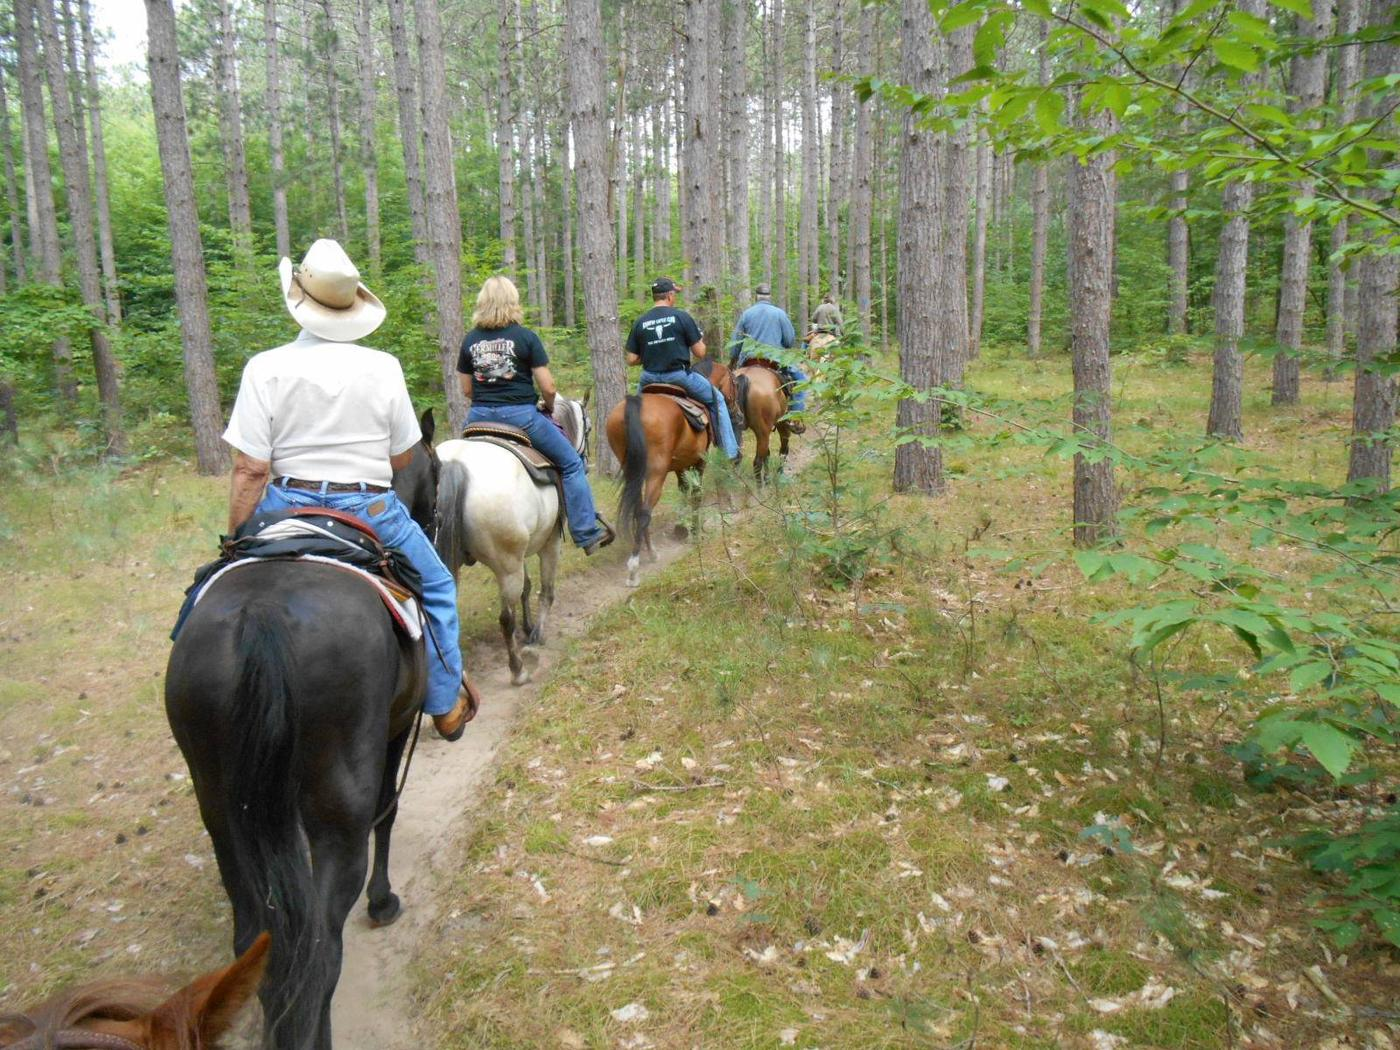 Hungerford Horse Trail, Manistee National ForestOut for a trail ride, Hungerford Horse Trail